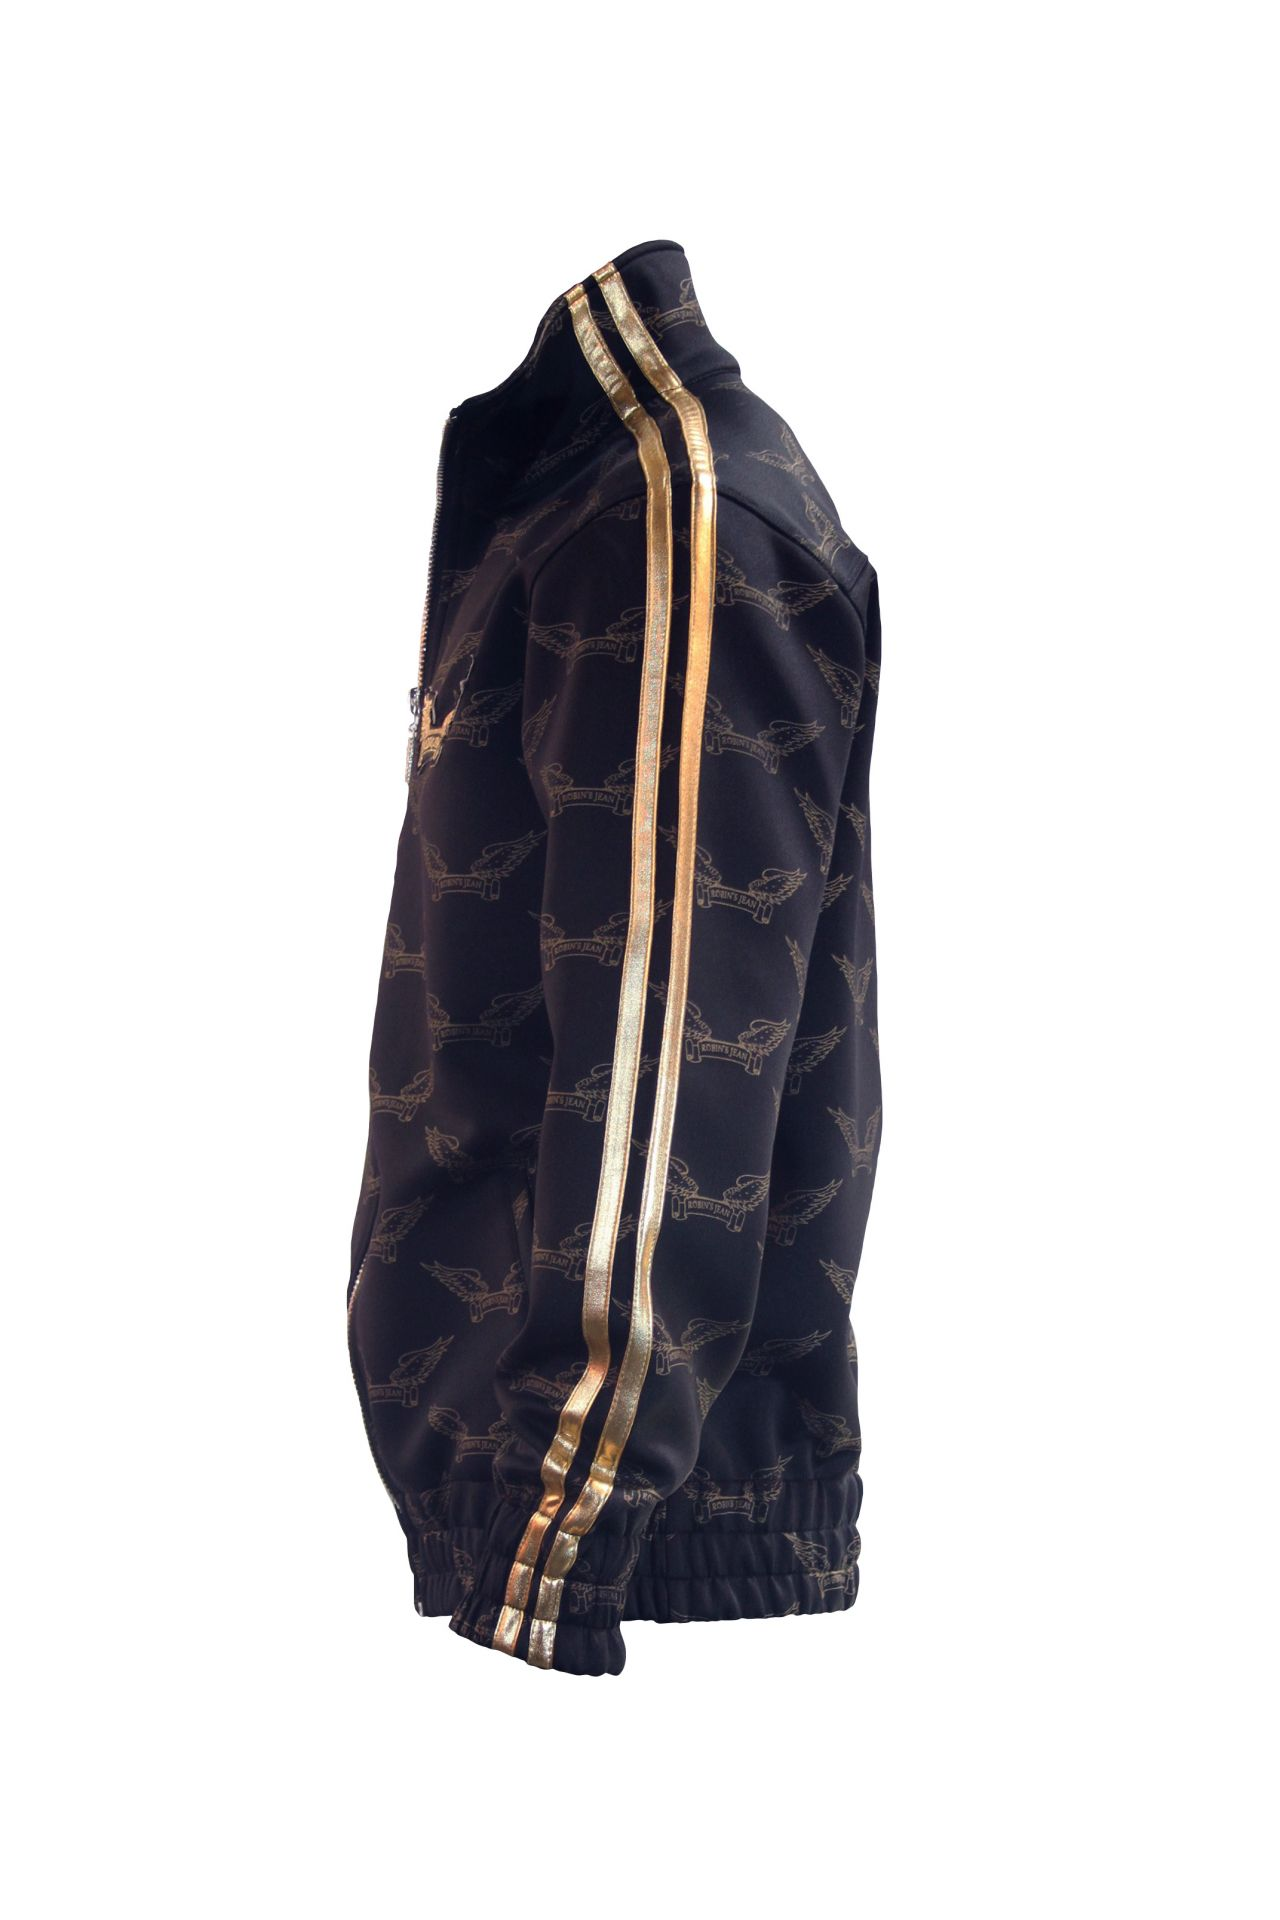 ROBIN'S MONOGRAM TRACK JACKET IN BLACK AND GOLD